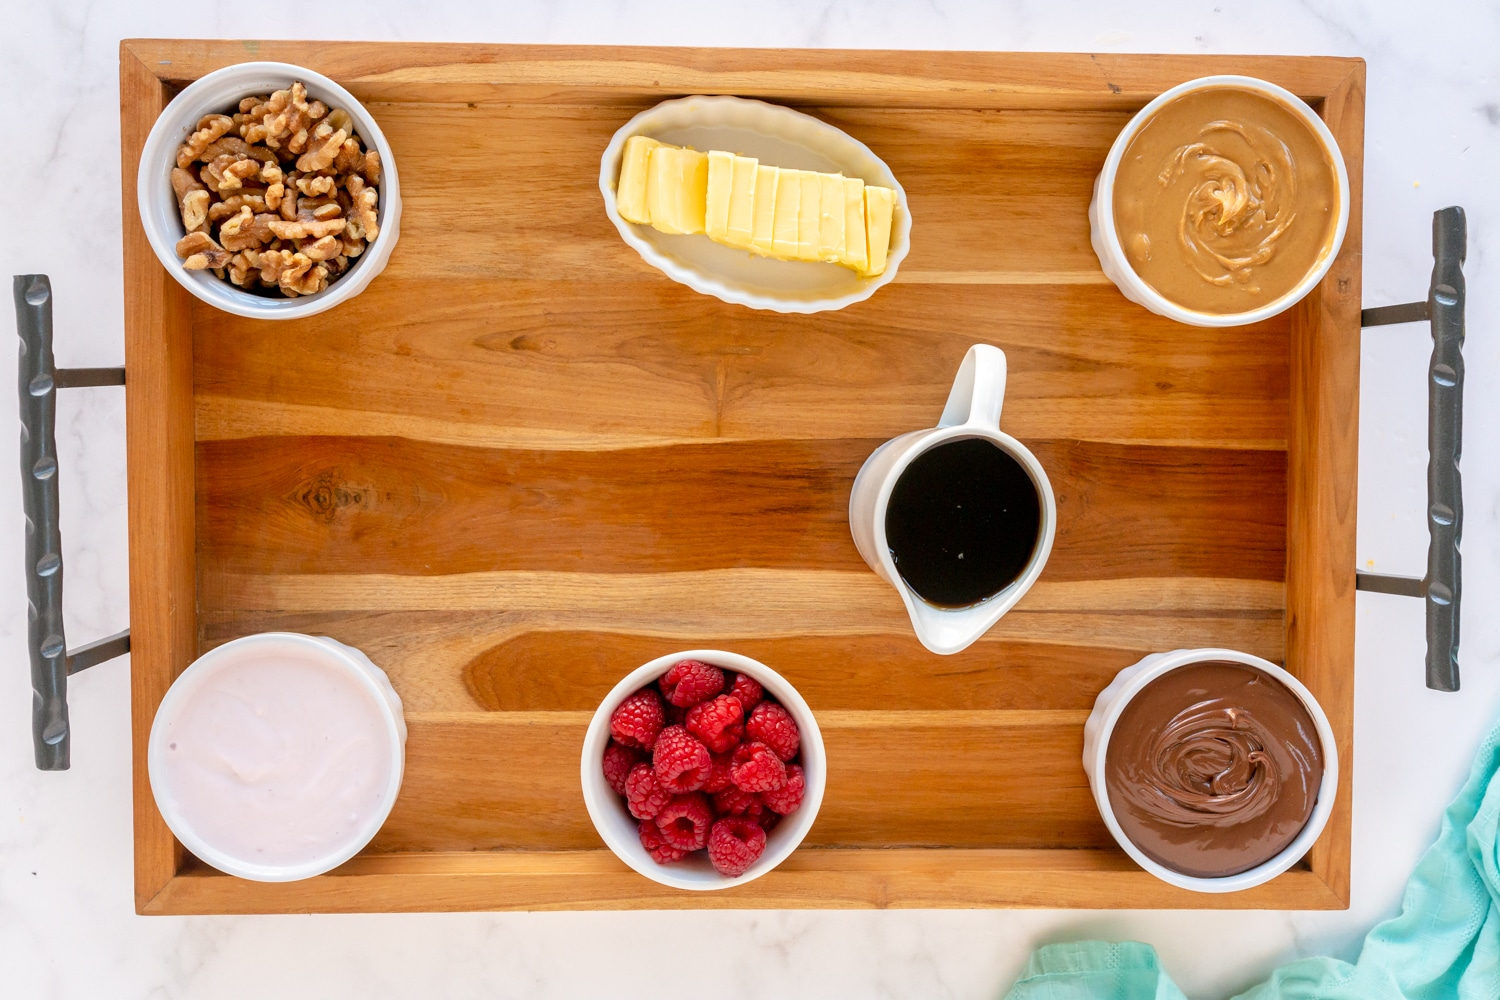 build your own waffle board with toppings